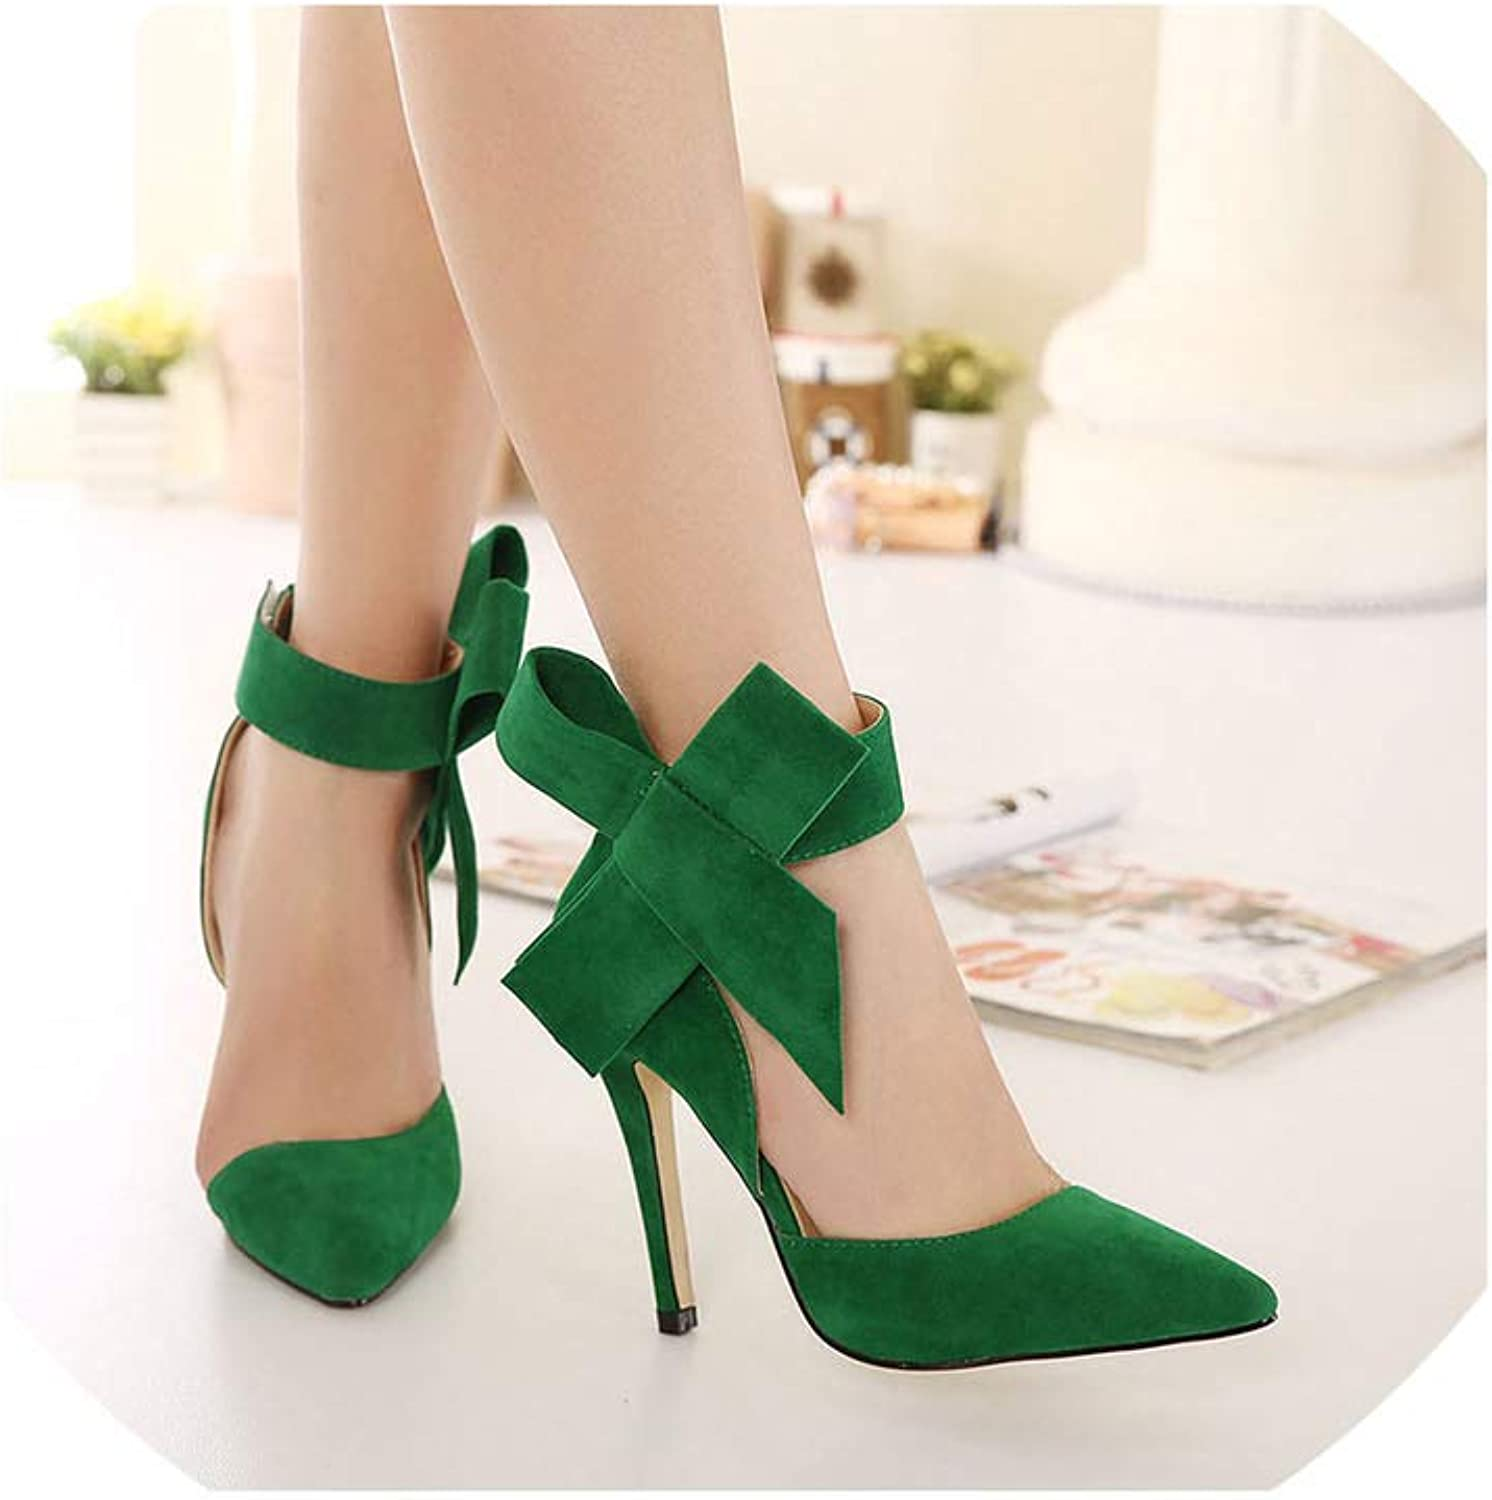 Axd-Home Fashion Sexy Big Bow Pointed Toe high Heels Sandals shoes Woman Ladies Wedding Party Pumps shoes